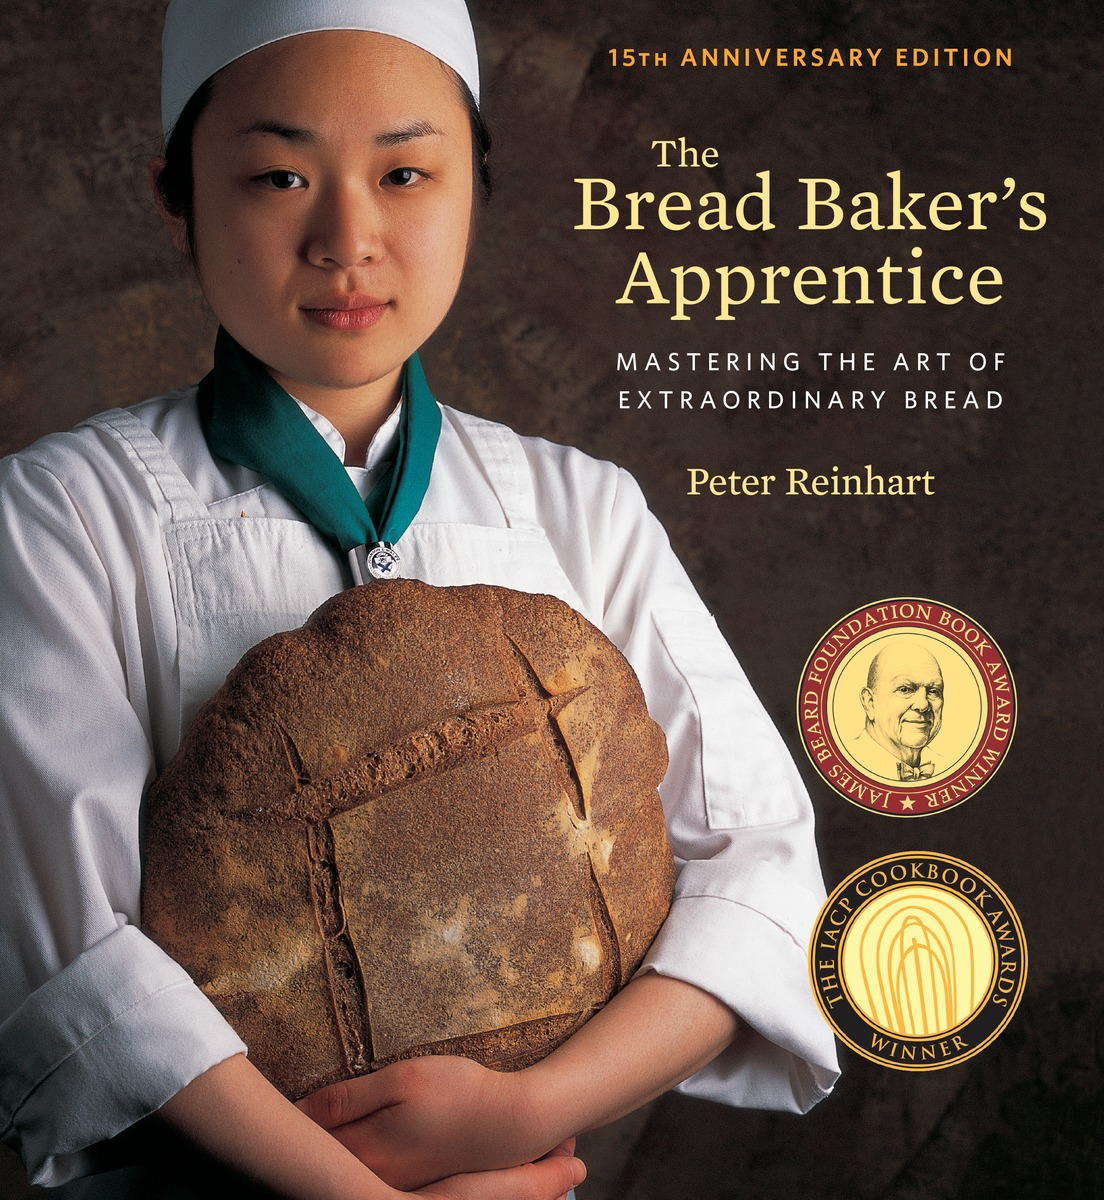 The Bread Baker's Apprentice, 15th Anniversary Edition lightstar bardano 891096